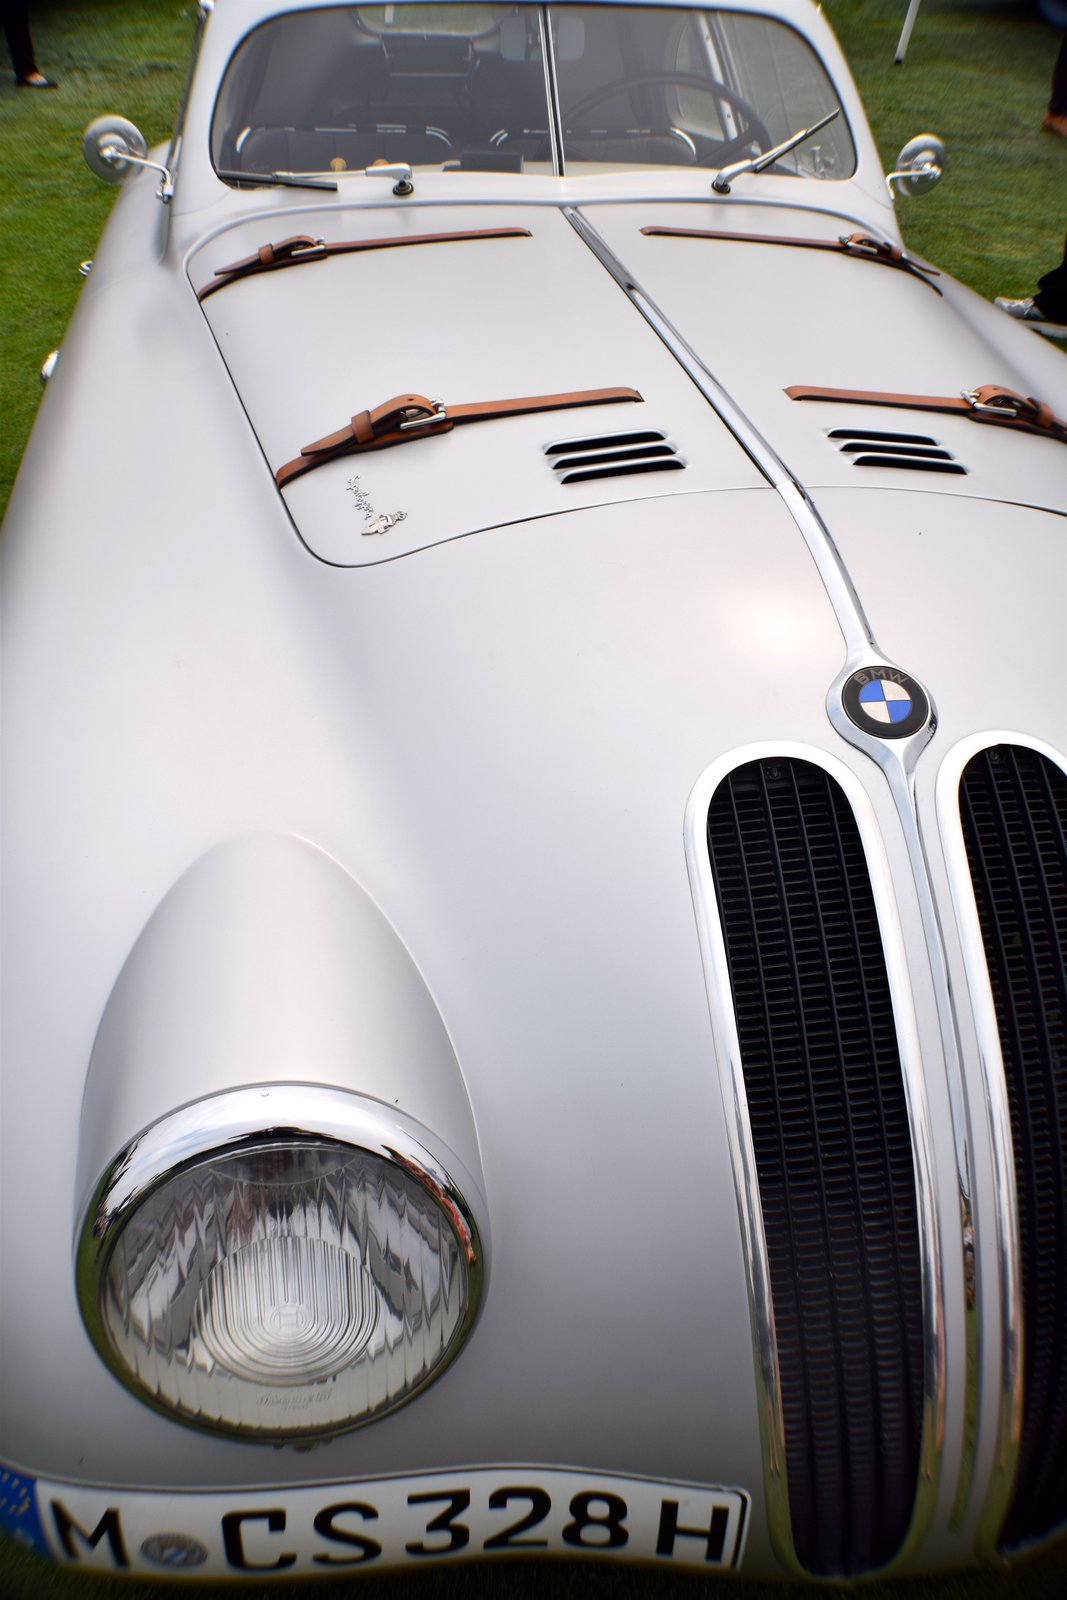 """In 1939, Carrozzeria Touring in Milan built this """"superleggera"""" body on a BMW 328 chassis to be used for long-distance racing. It's lightweight and aerodynamic shape allowed it to hit a top speed of 137 and completed the 24 Hours of Le Mans race in 1939. This touring coupé completed its last race at the Ruhestein Hillclimb in 1946—the first German race held after World War II. After BMW Classic restored it to its original condition, it's now on display at the BMW Museum in Munich, German  Photo 6 of 10 in A Day at the Pebble Beach Concours d'Elegance Car Show"""